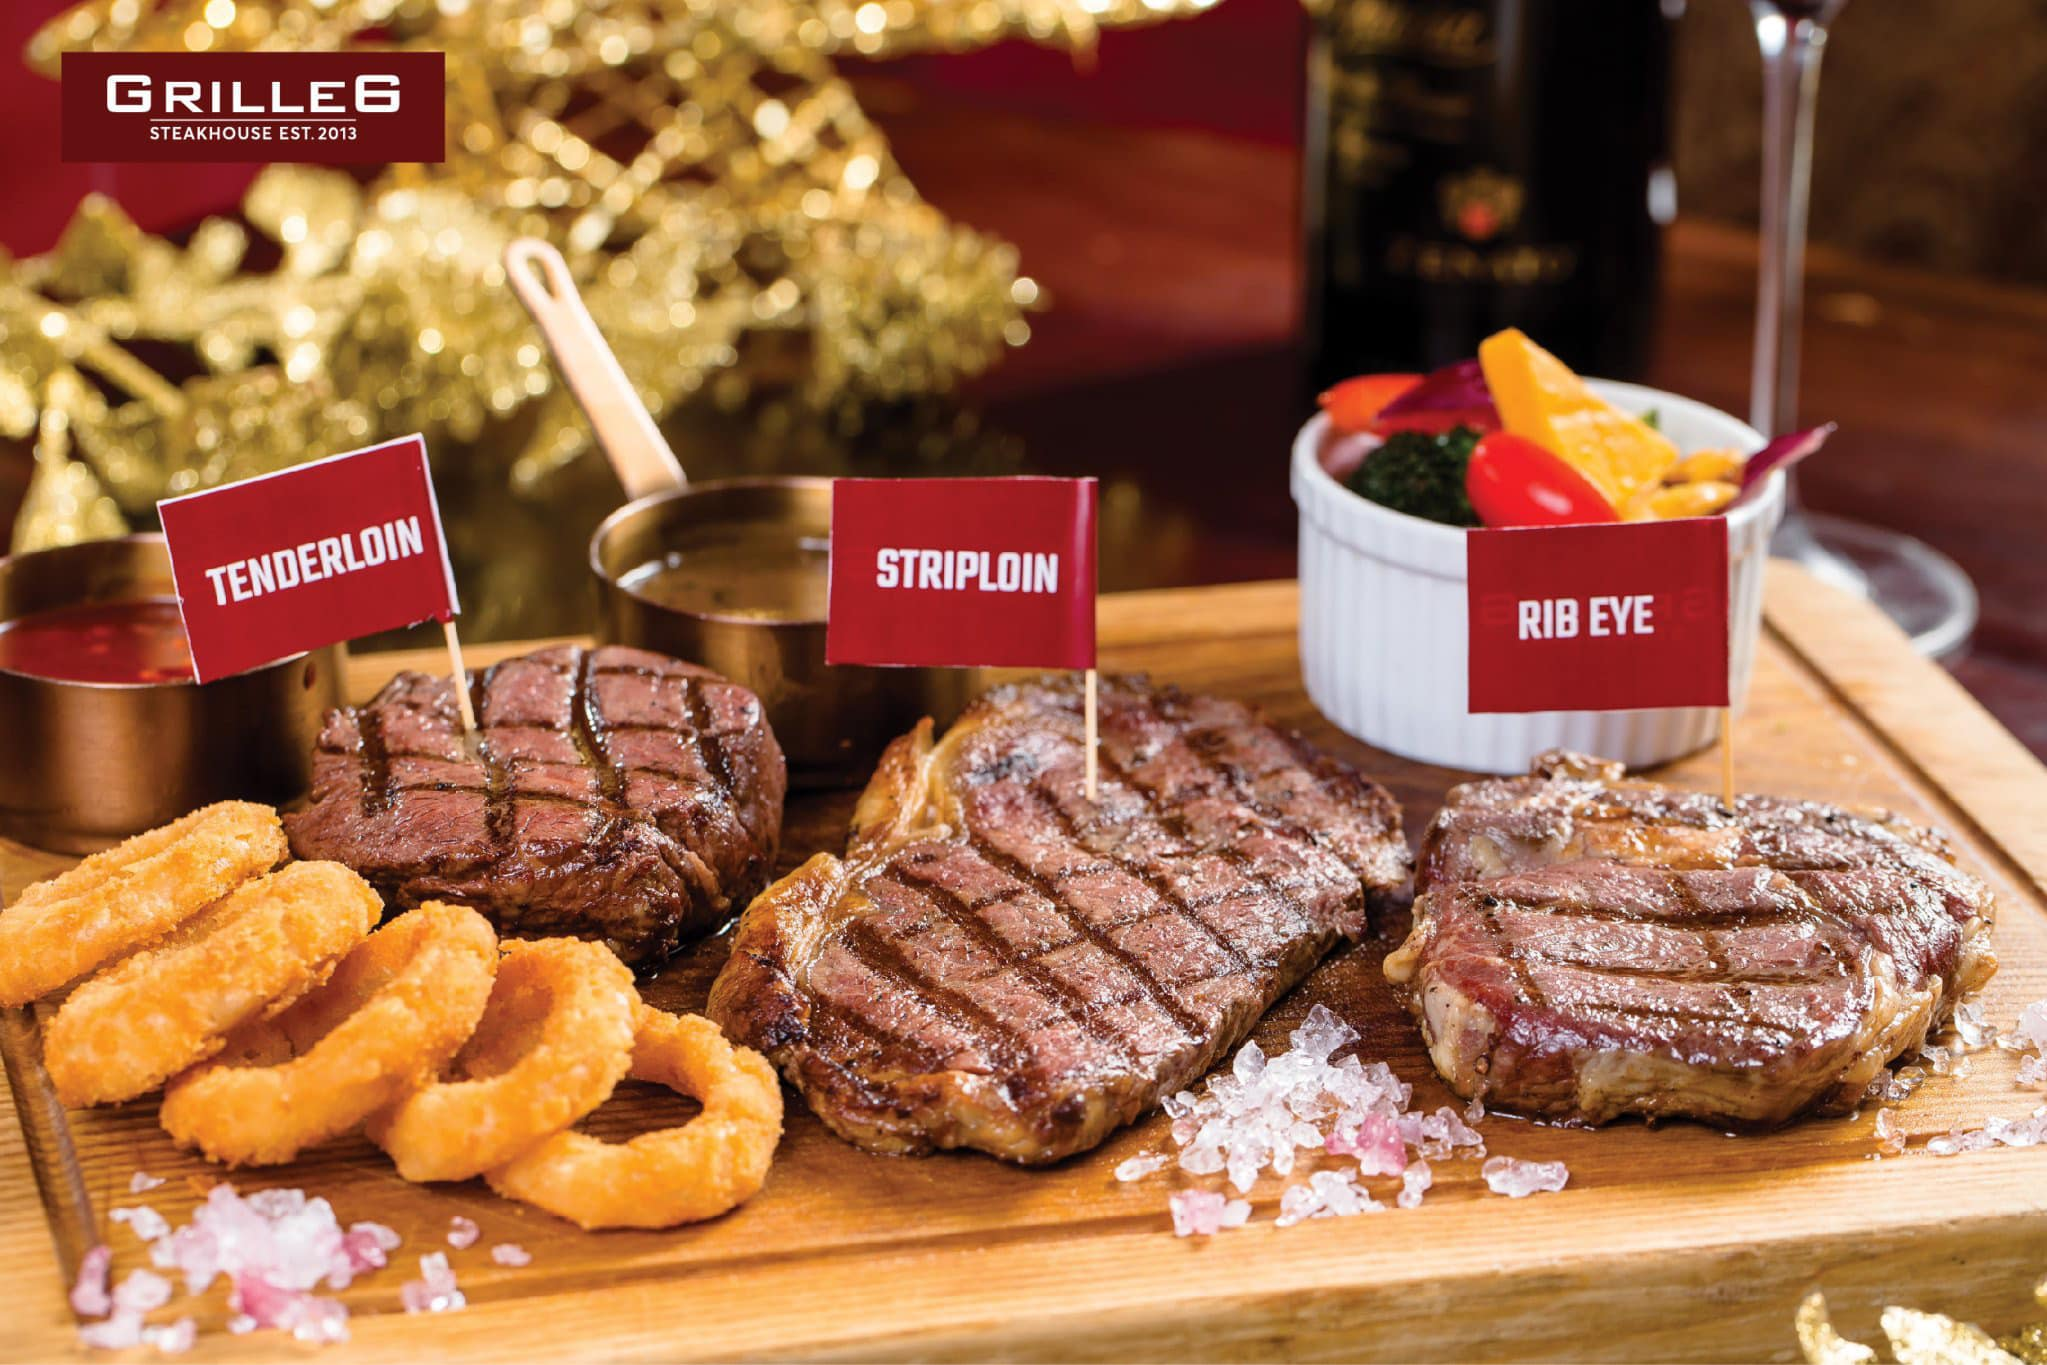 Grill6 Steakhouse